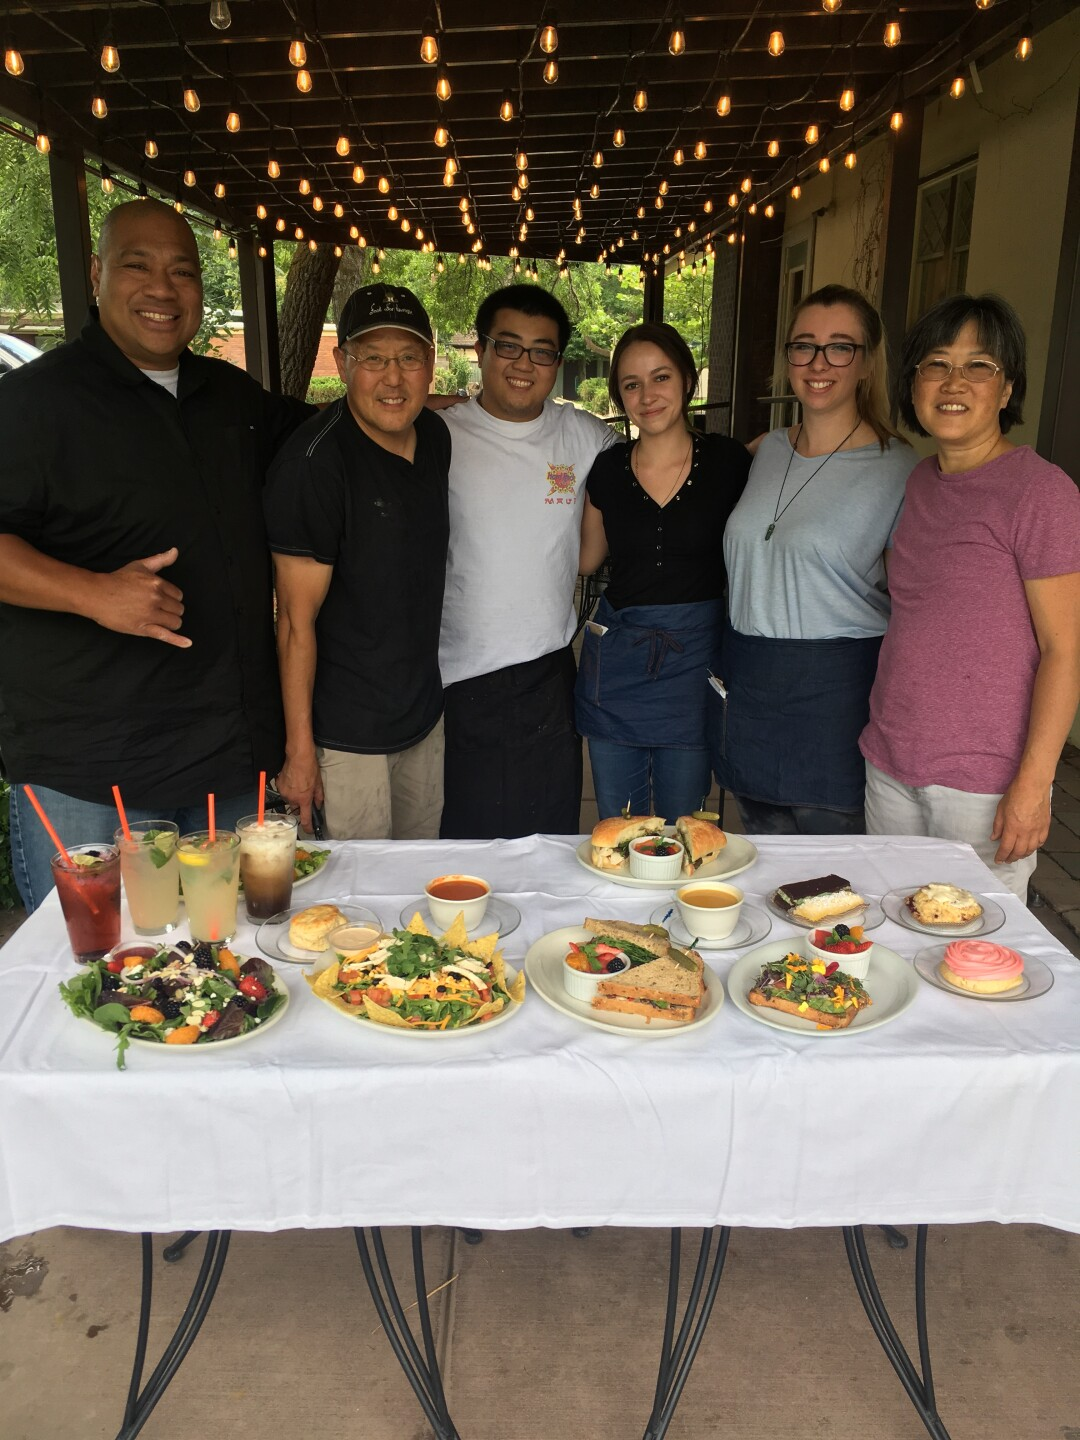 Photos: Big Budah's blog: A month packed with wedding prep and reasons toparty